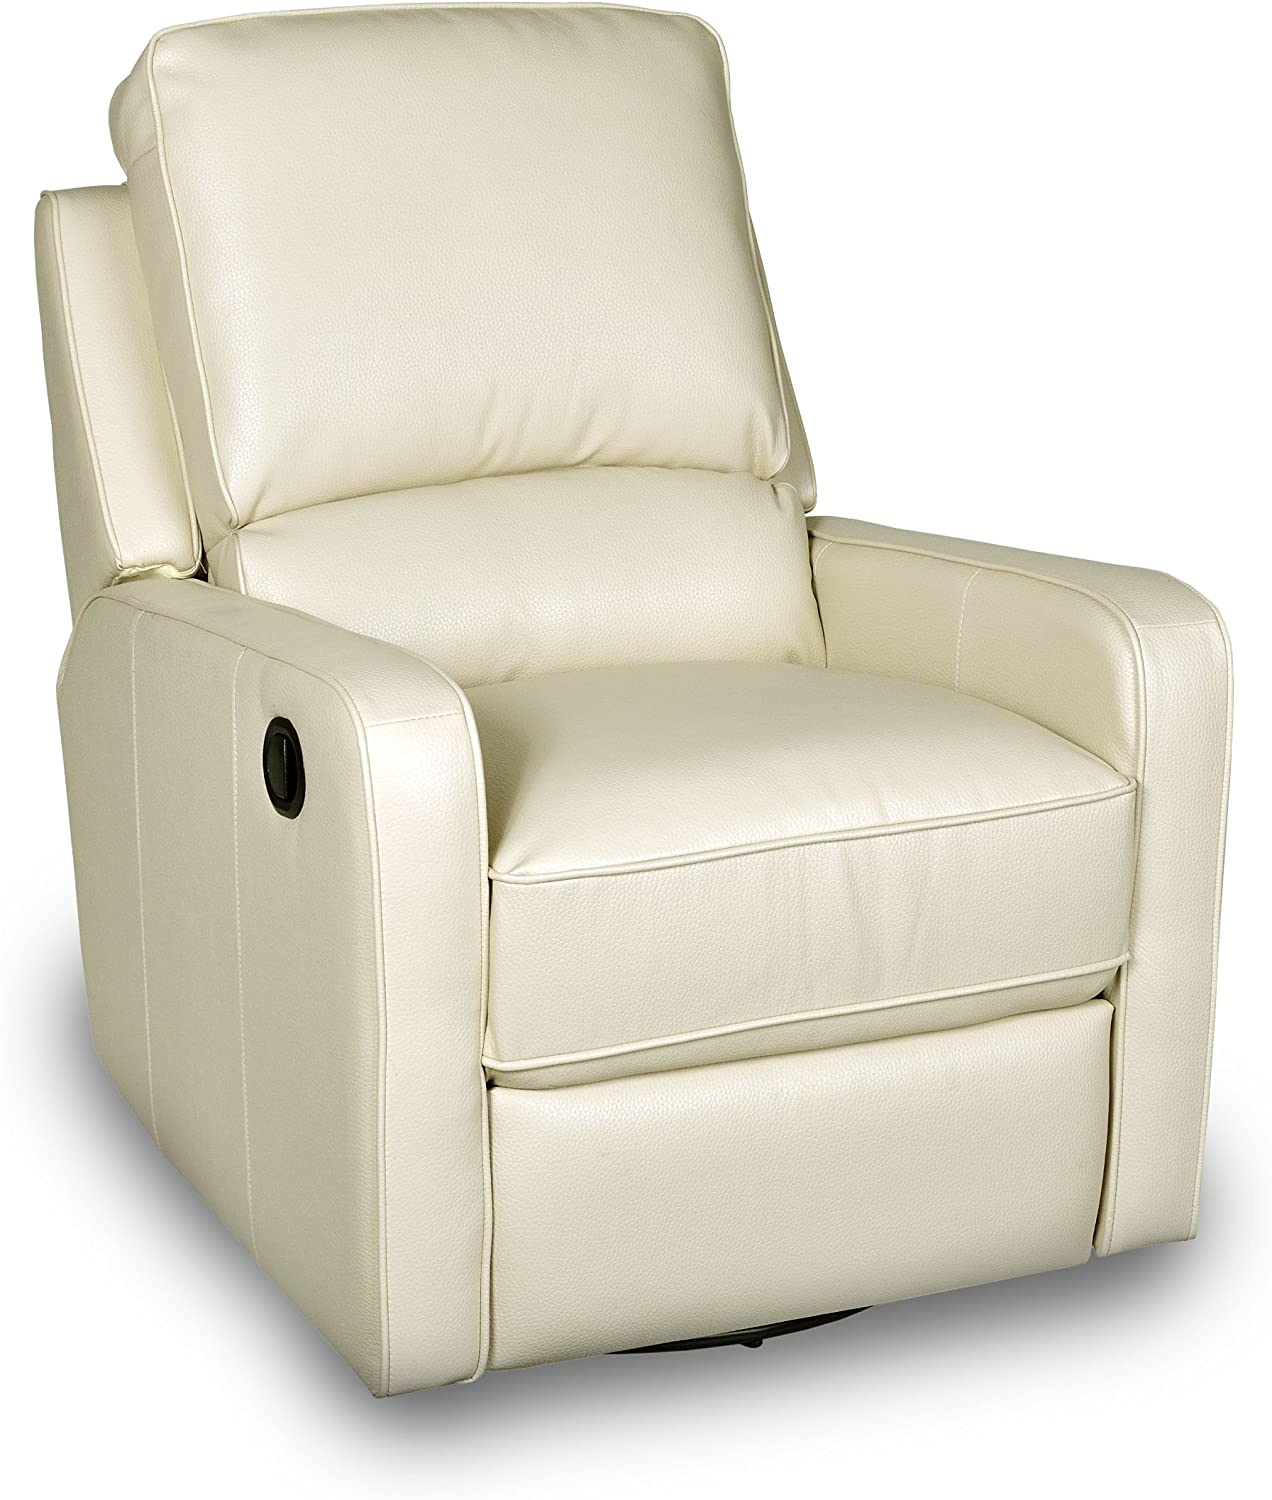 Opulence Home Perth Swivel Glider Recliner, Somerset cr me II